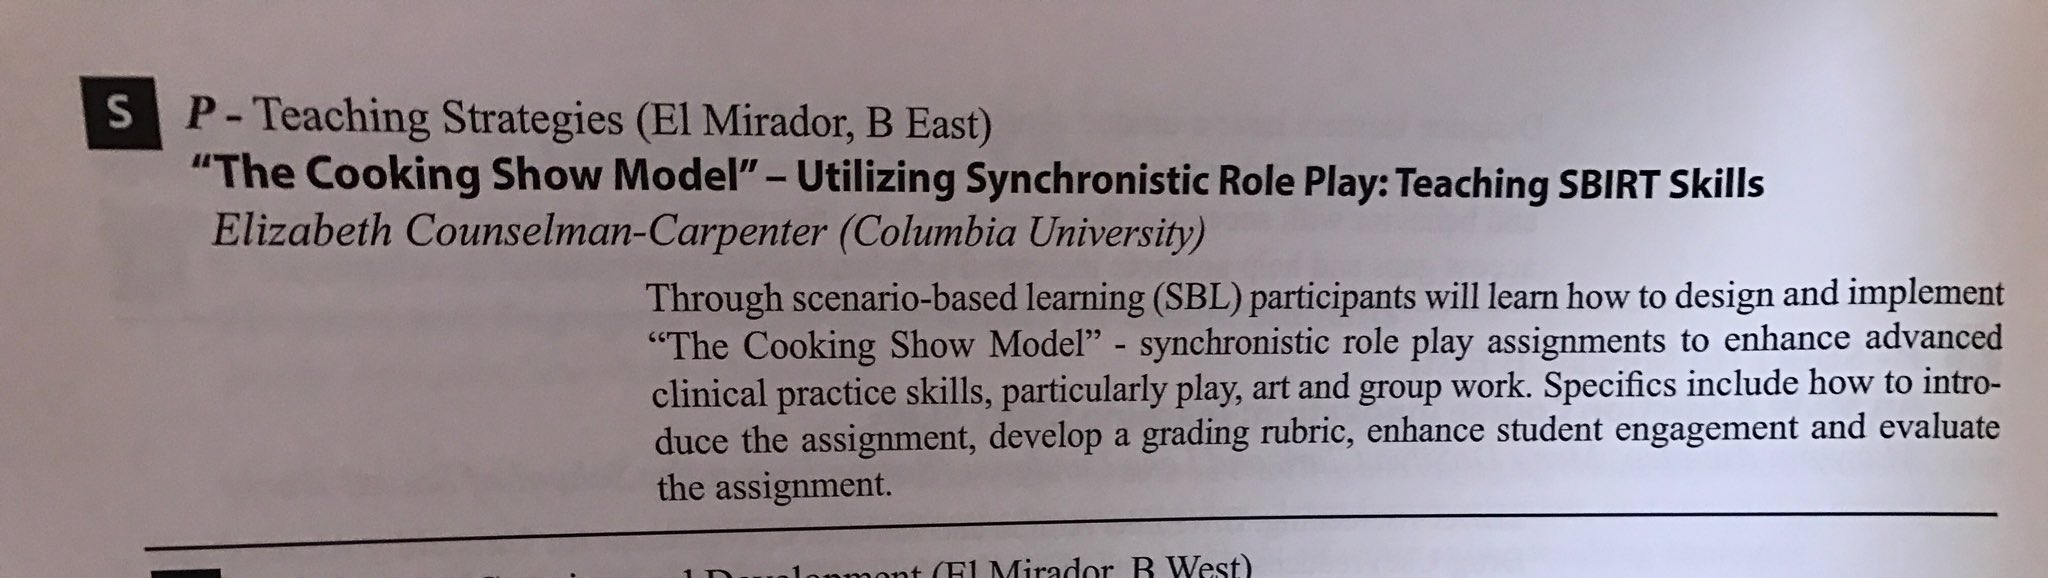 Looking forward to your session today at 4:15 on synchronistic role play! @ElisabethAnneCC @ColumbiaSSW #swde2017 https://t.co/Kx2pewDX7h